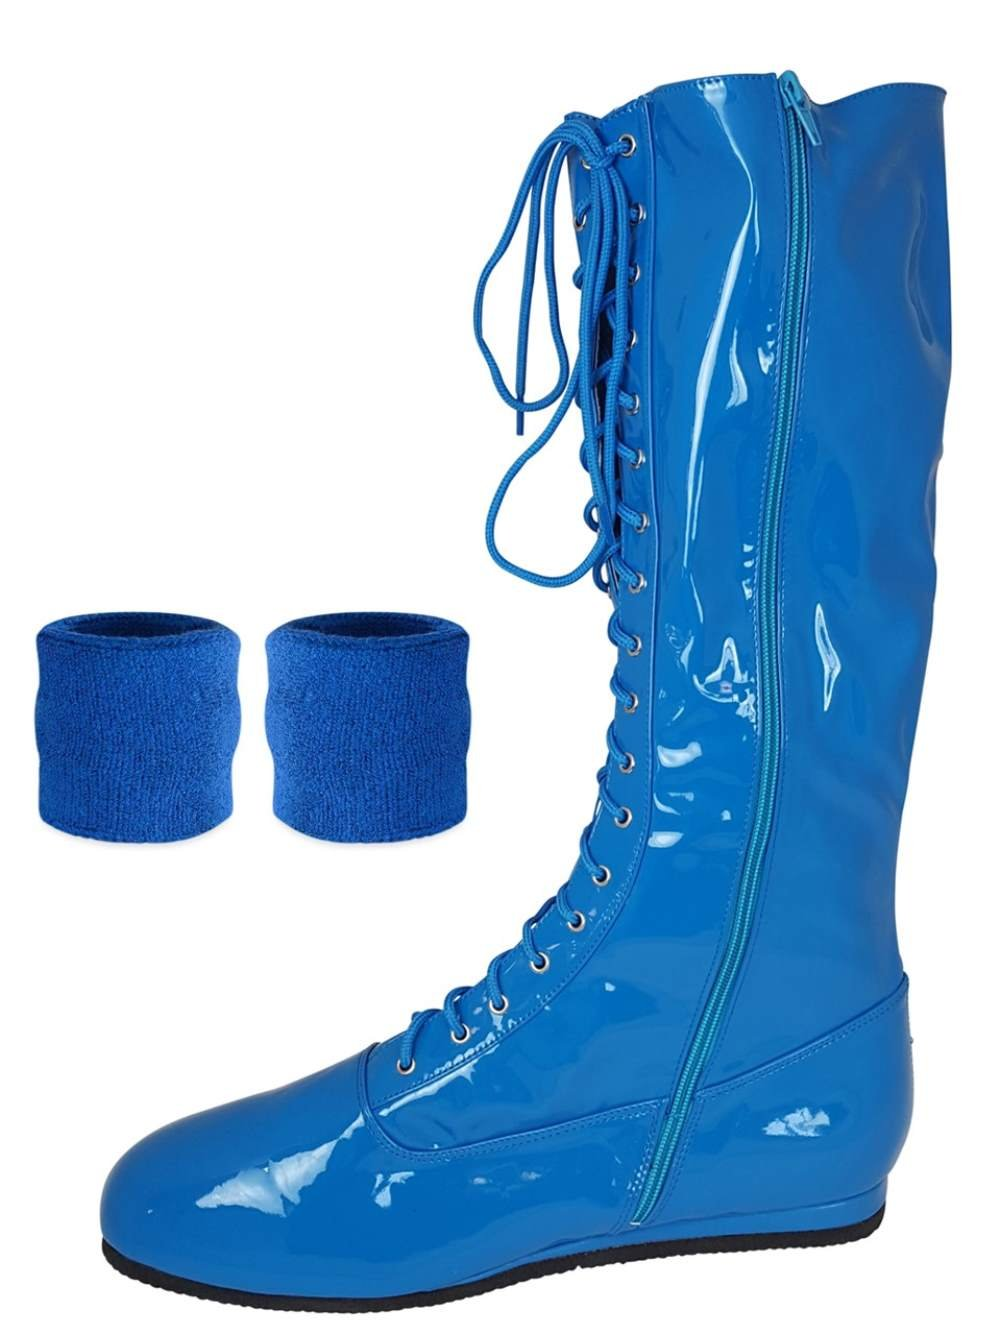 (Blue, Medium) Pro Wrestling Costume Boots with Matching Sweatbands